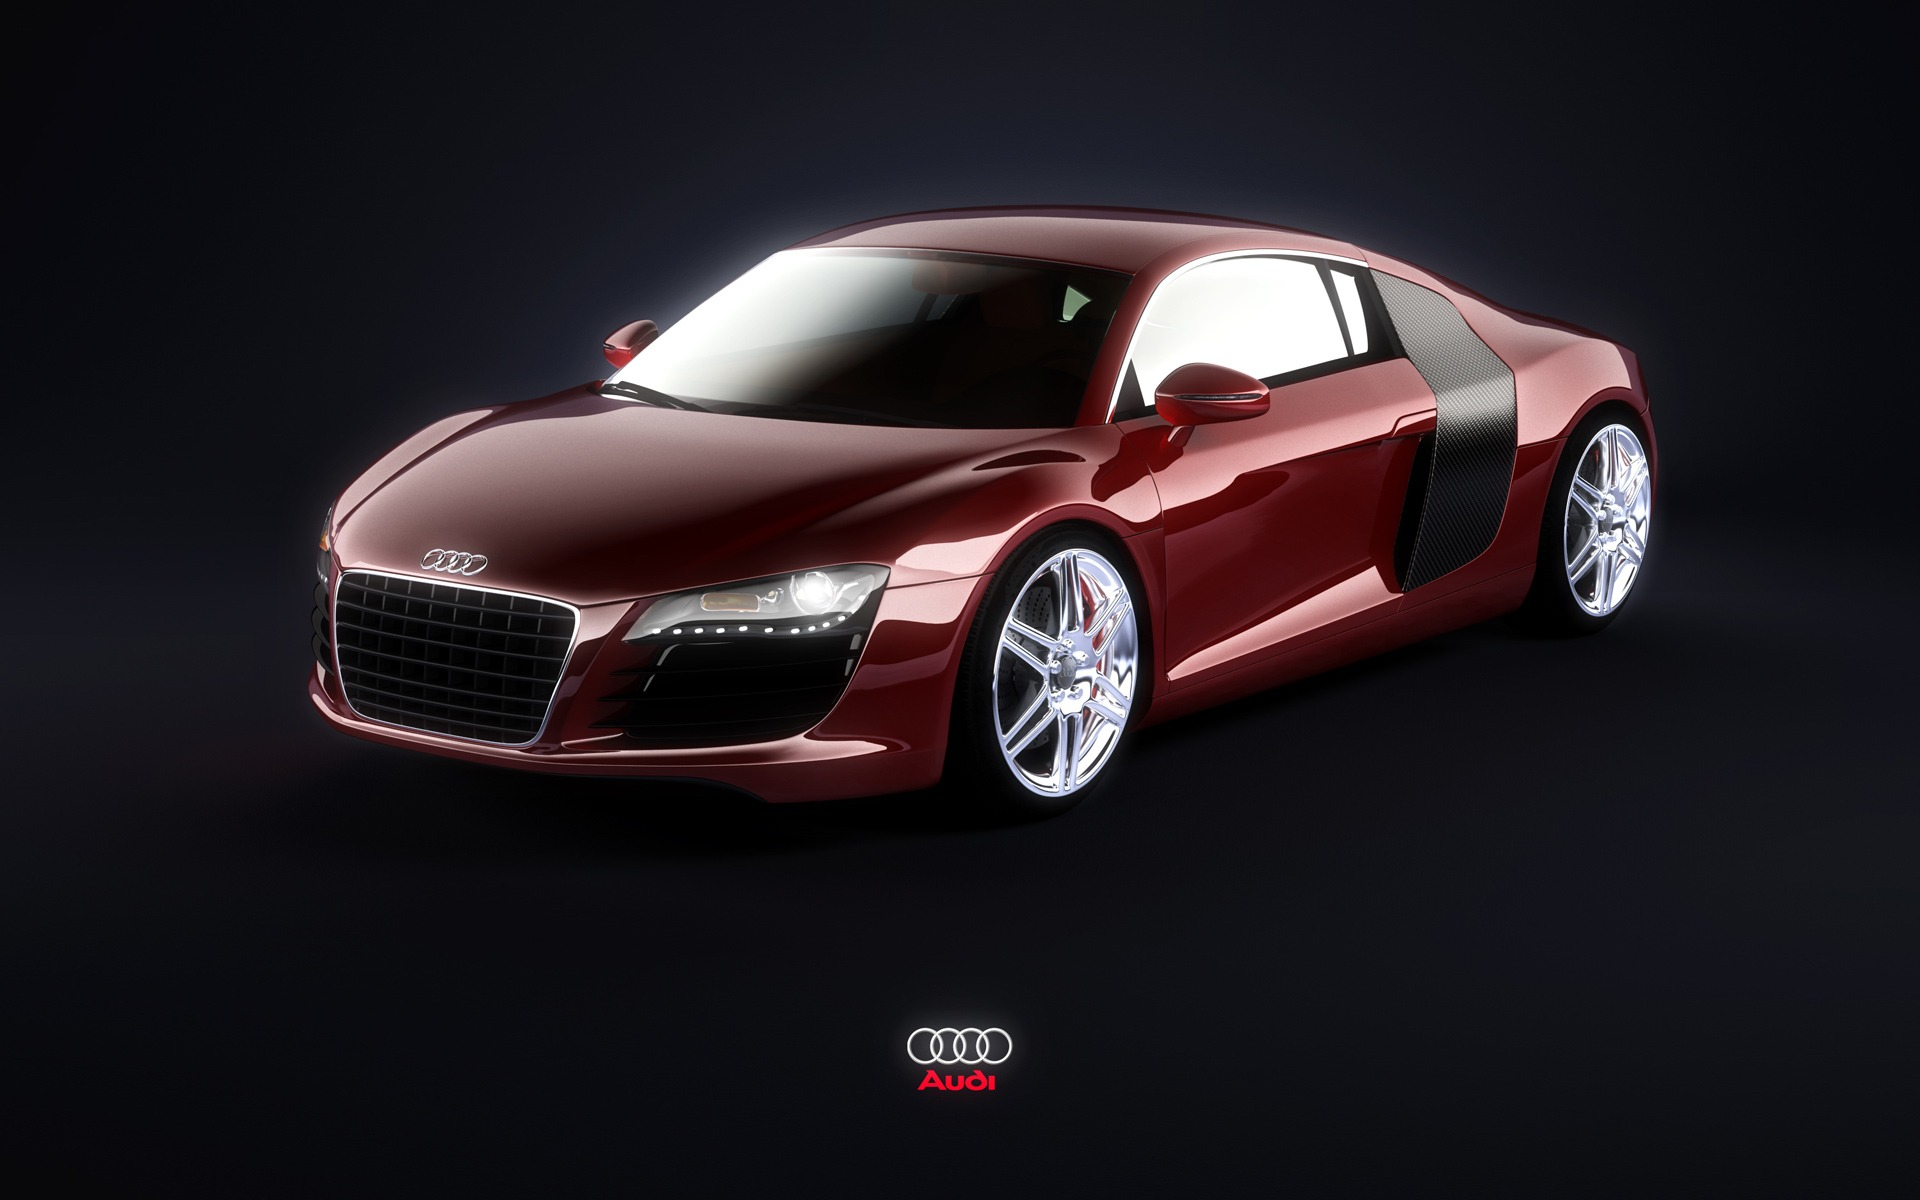 Red Audi R8 Wallpaper Audi Cars